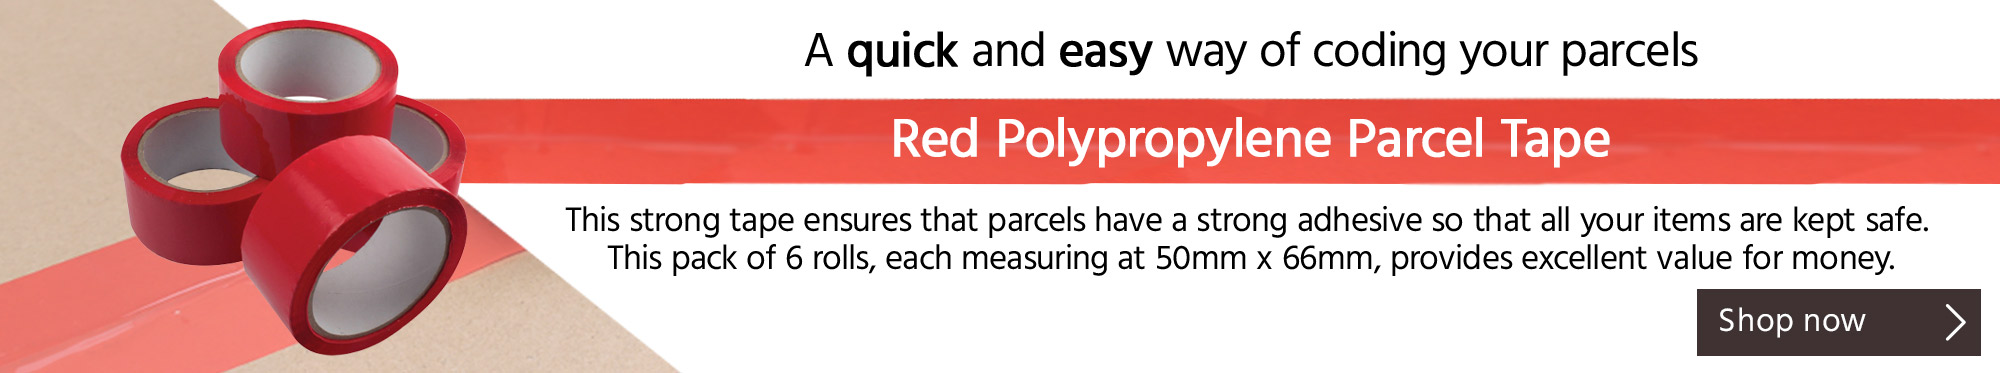 A Quick and Easy Way of Coding Your Parcels